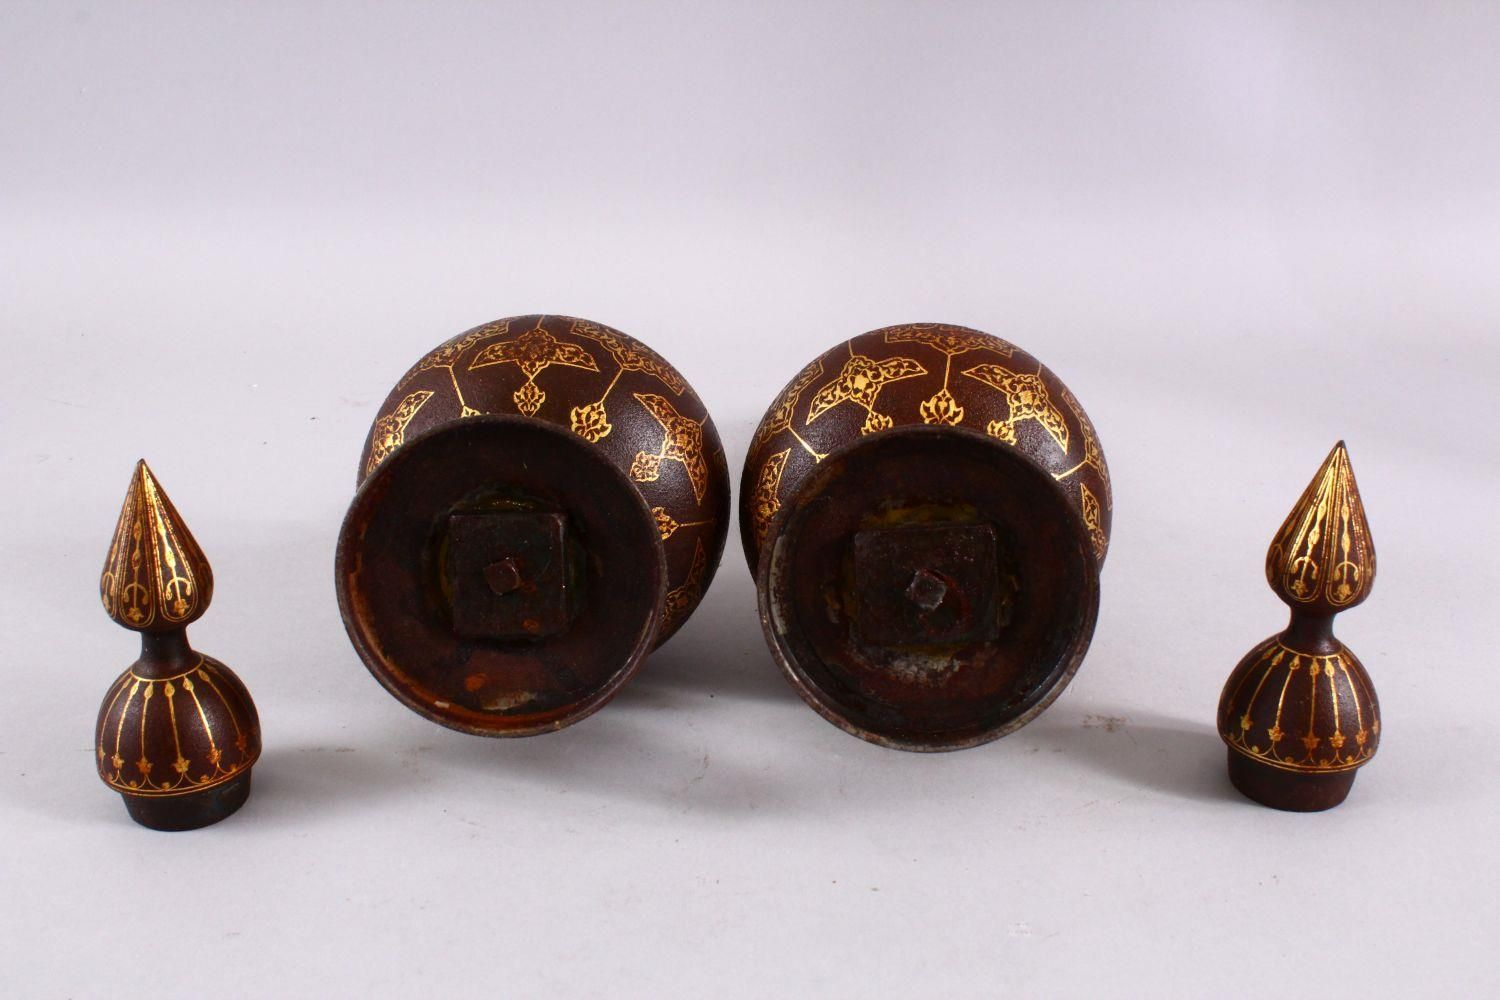 A PAIR OF ISLAMIC DAMASCENE INLAID STEEL BOTTLE & COVERS, each with gold inlaid panels of star - Image 8 of 8